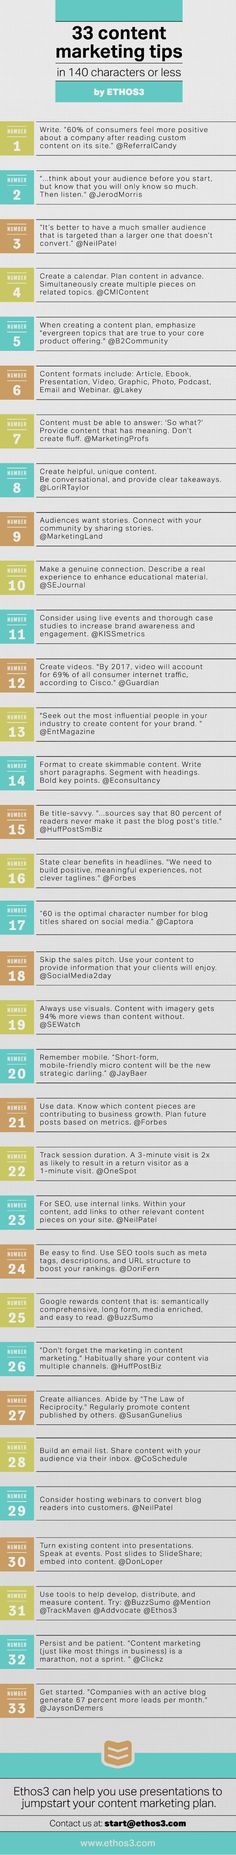 33 Content Marketing Tips In 140 Characters Or Less - #infographic